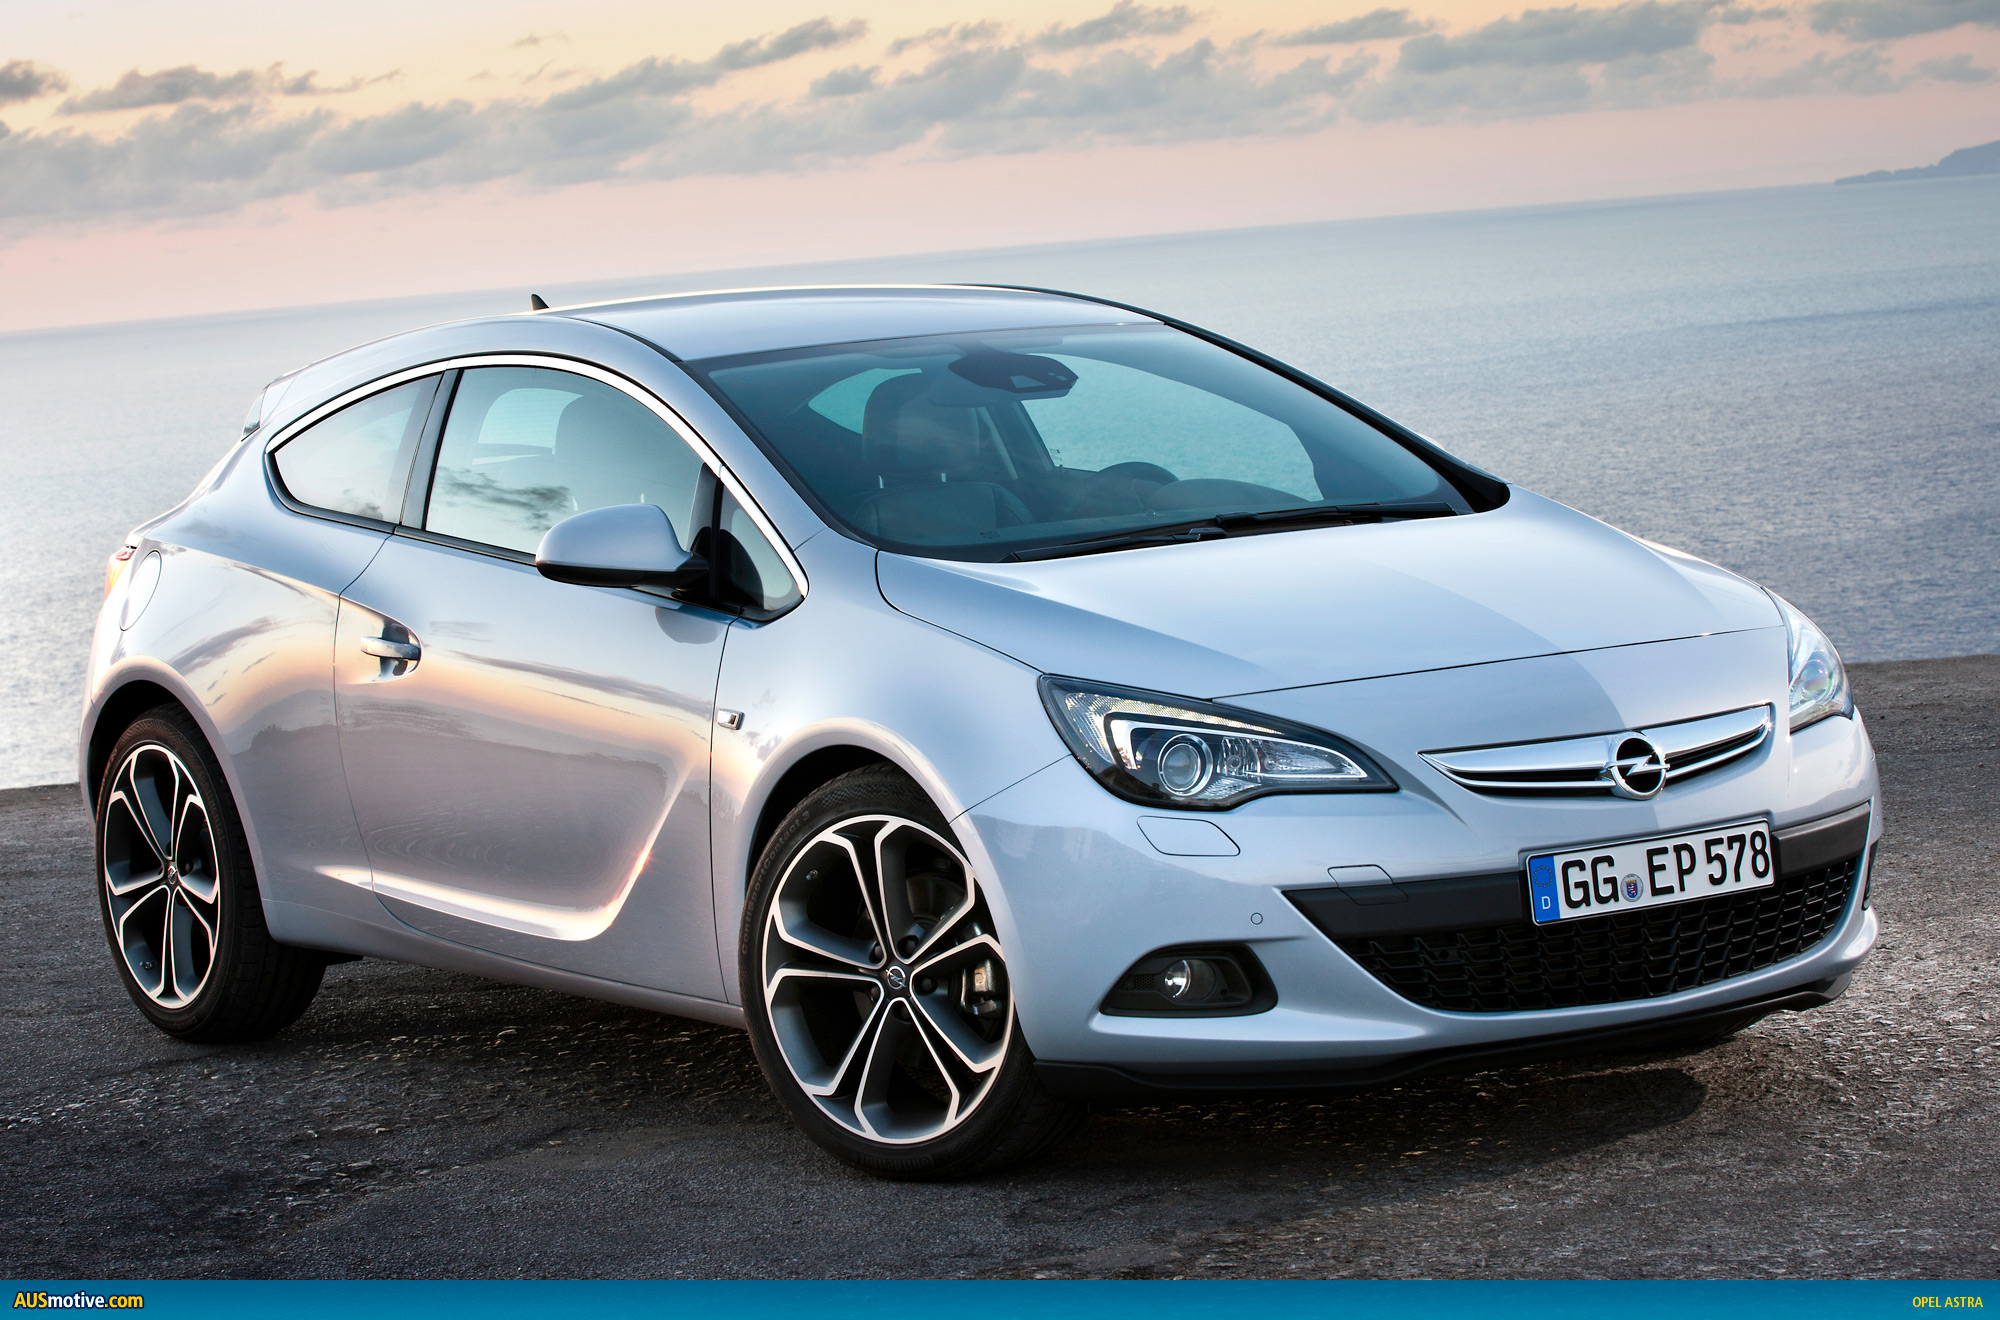 Opel Astra Ausmotive Opel Australia Secures Latest Astra For